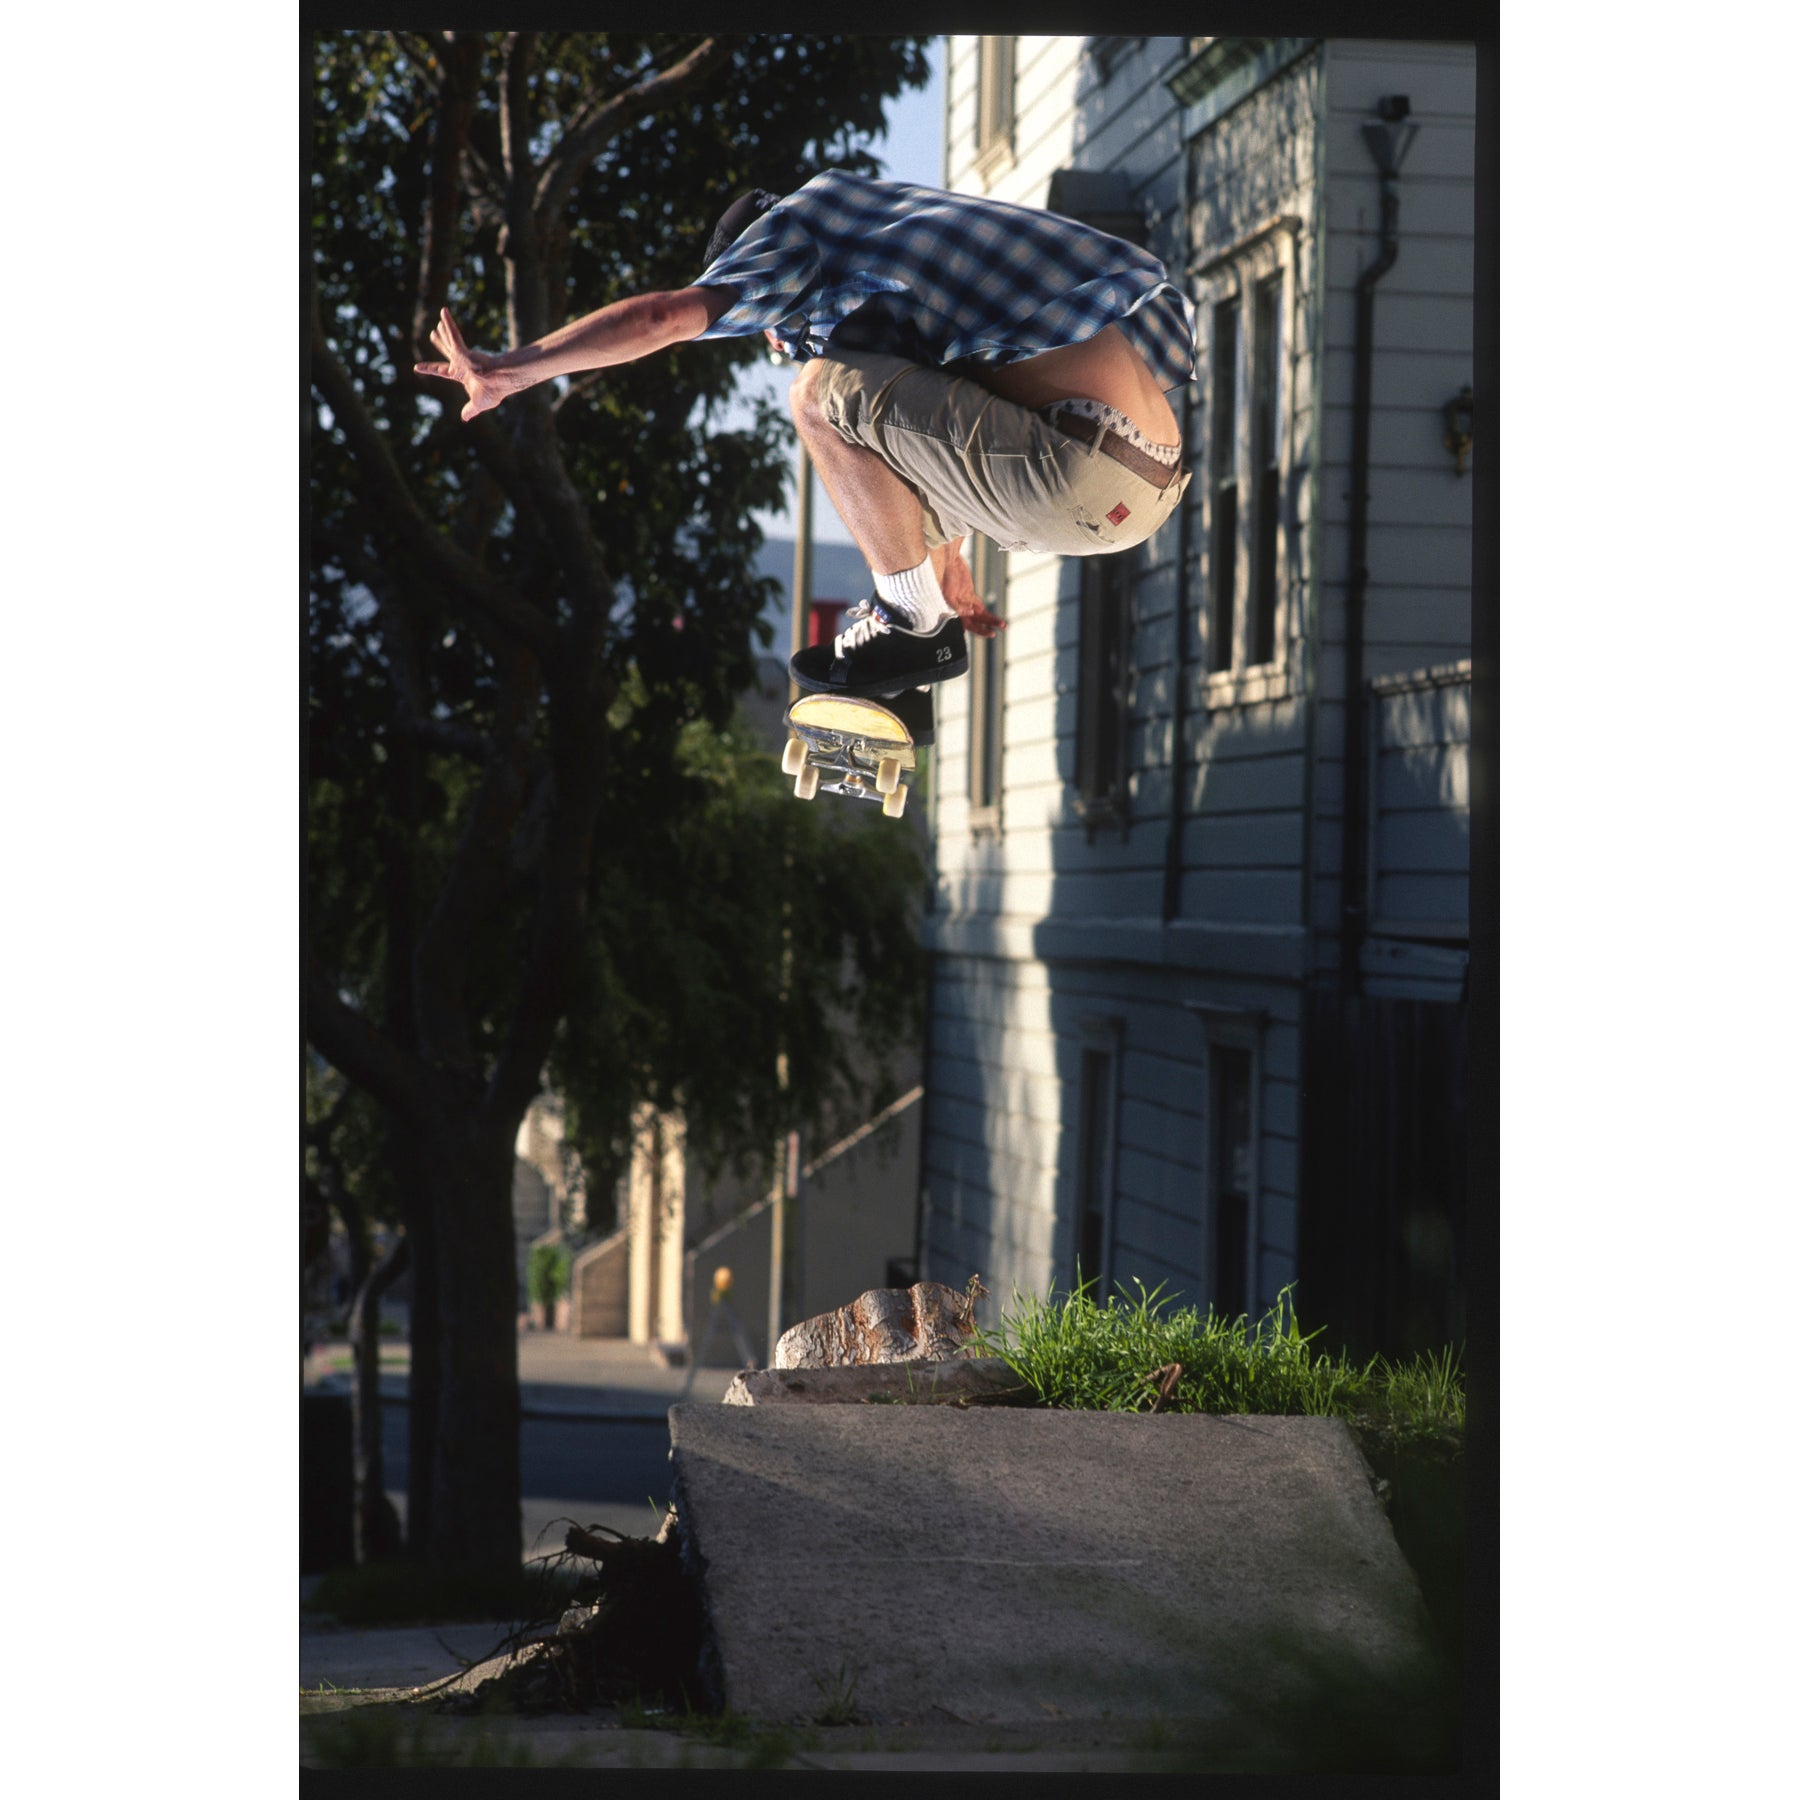 Image of John Cardiel San Francisco 1995, Anti Hero first year,  by Tobin Yelland